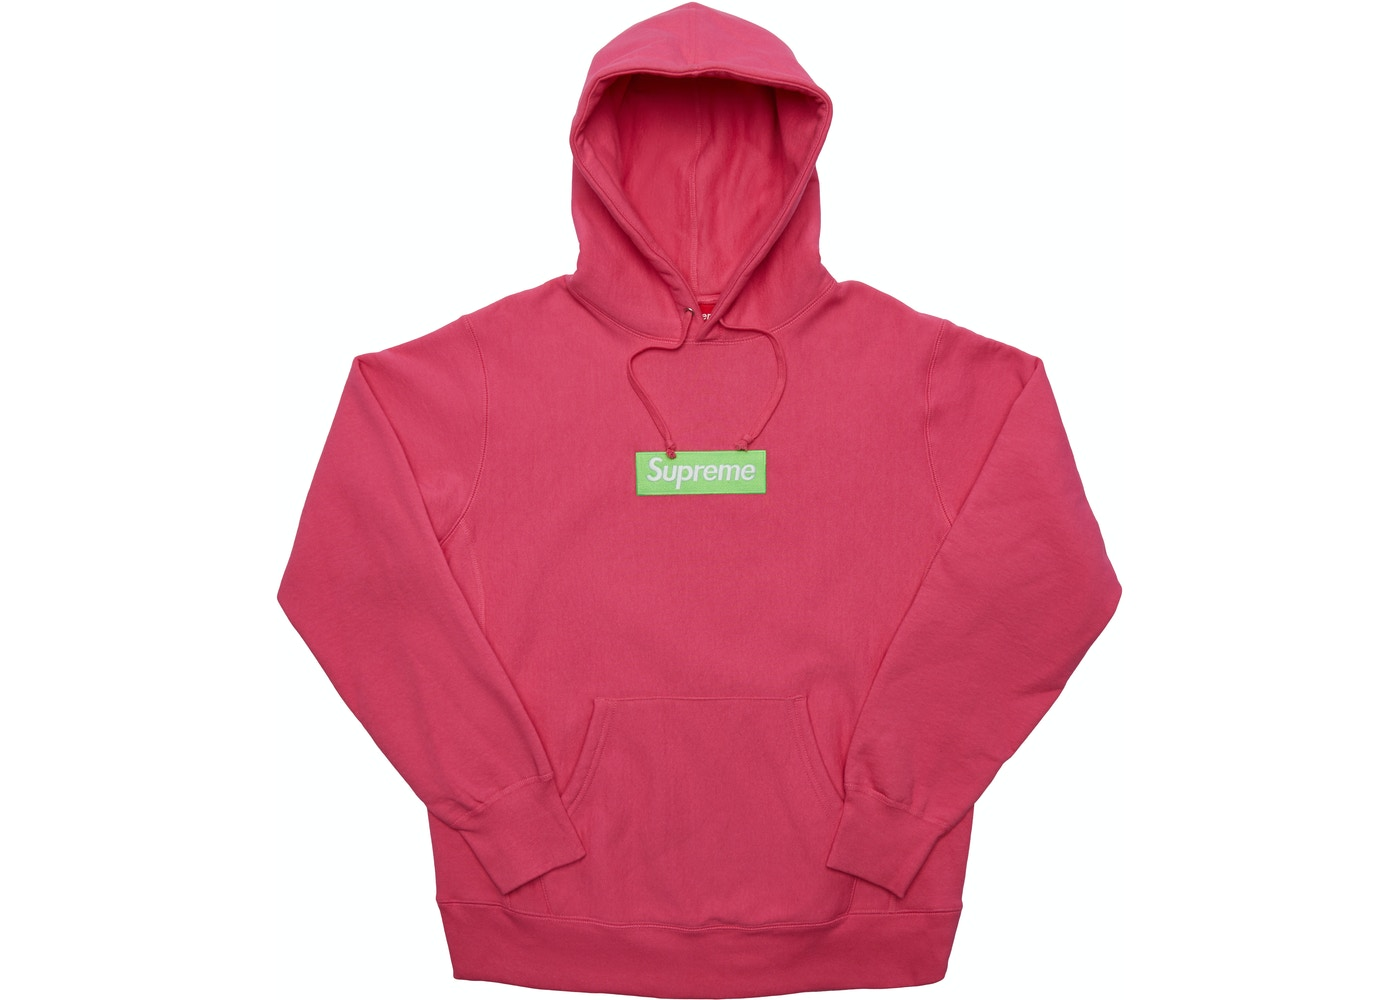 3c057d7d Supreme Box Logo Hooded Sweatshirt (FW17) Magenta - FW17